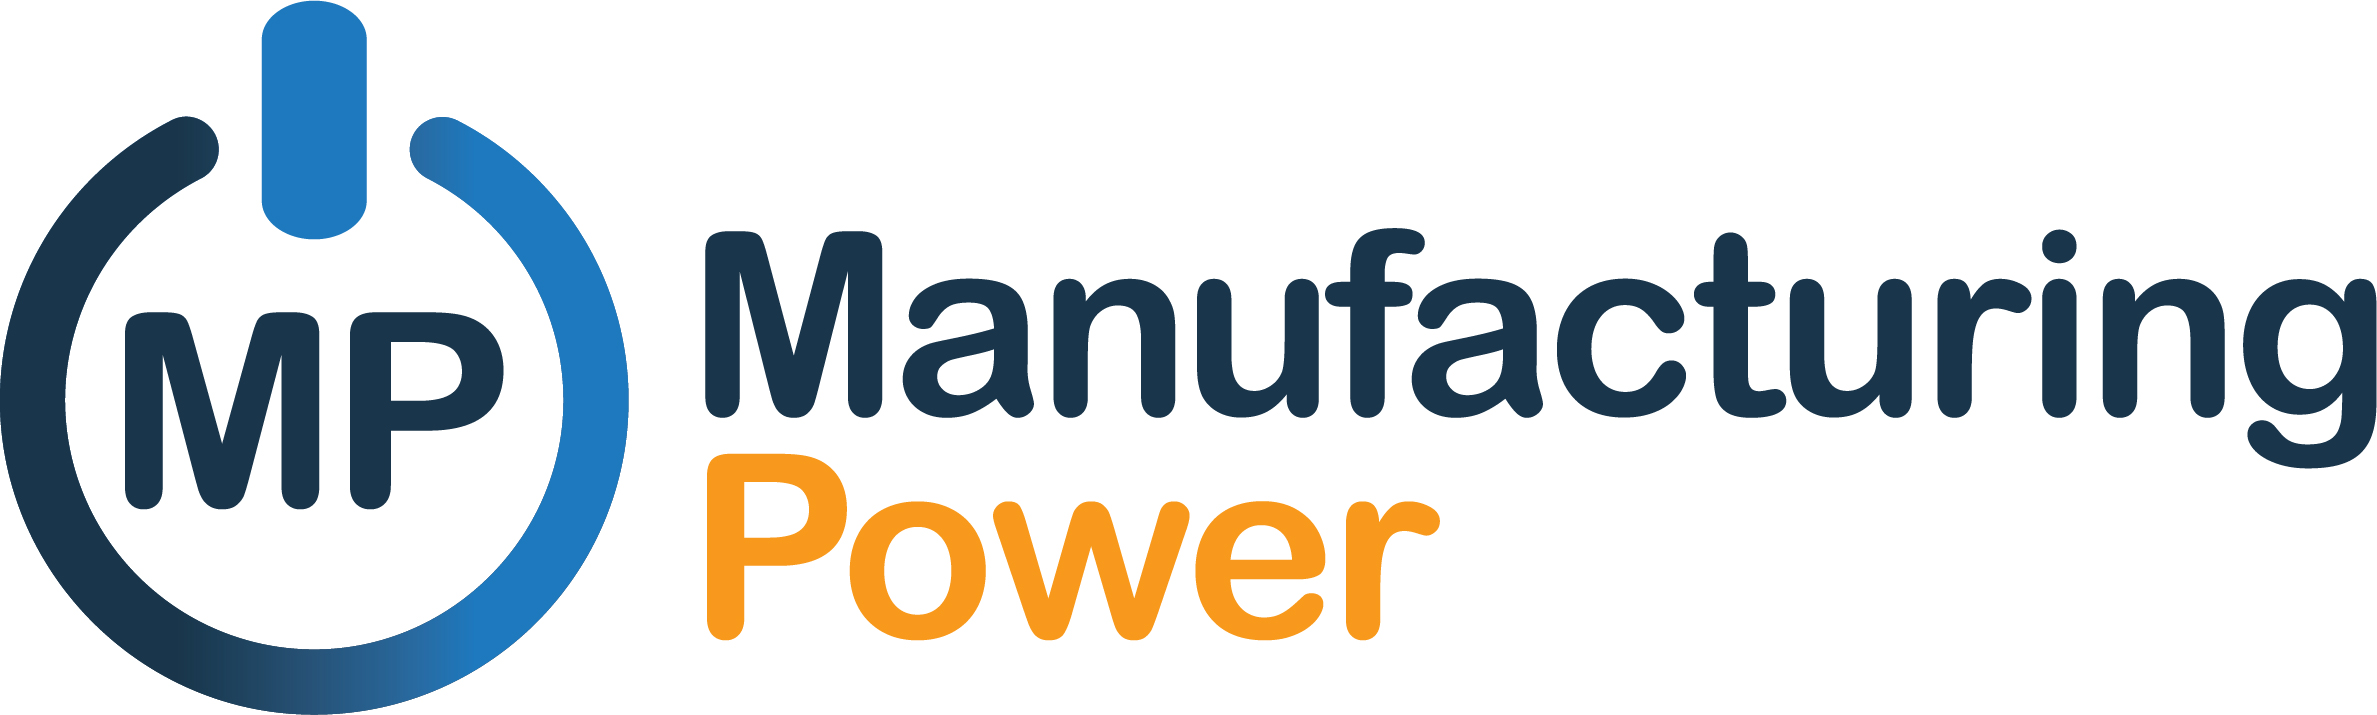 ManufacturingPower Hosts Competitive Pricing Webinar Next Week on March 5